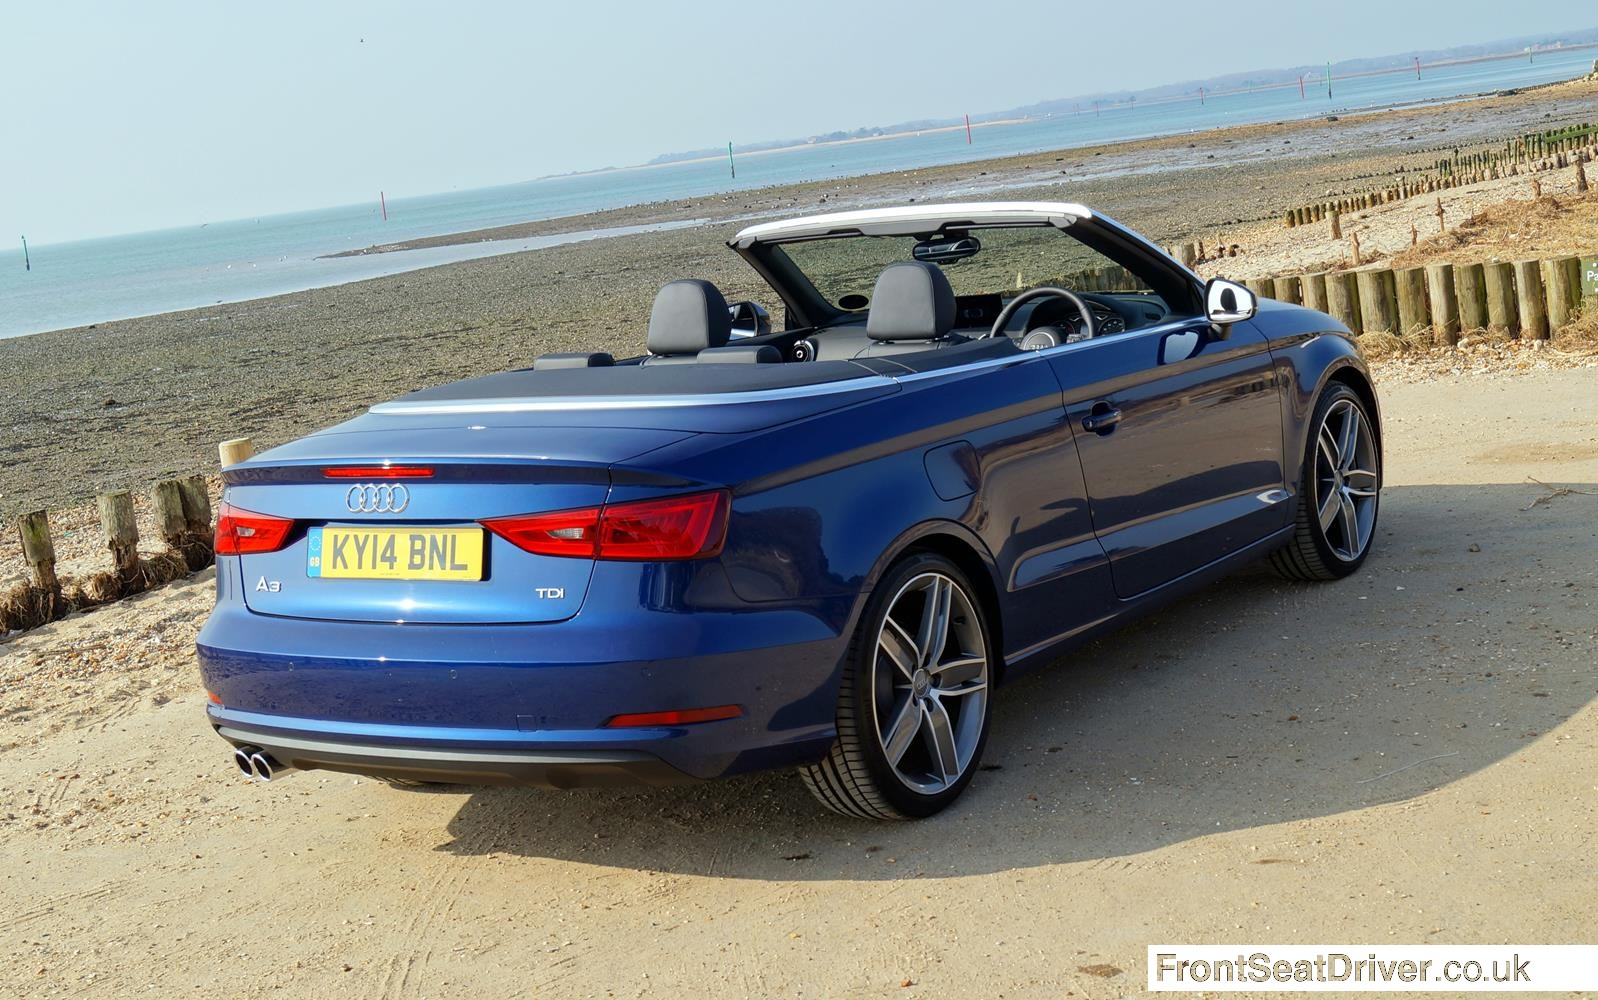 audi a3 cabriolet 2 0 tdi sport 2014 high rear phil huff front seat driver. Black Bedroom Furniture Sets. Home Design Ideas